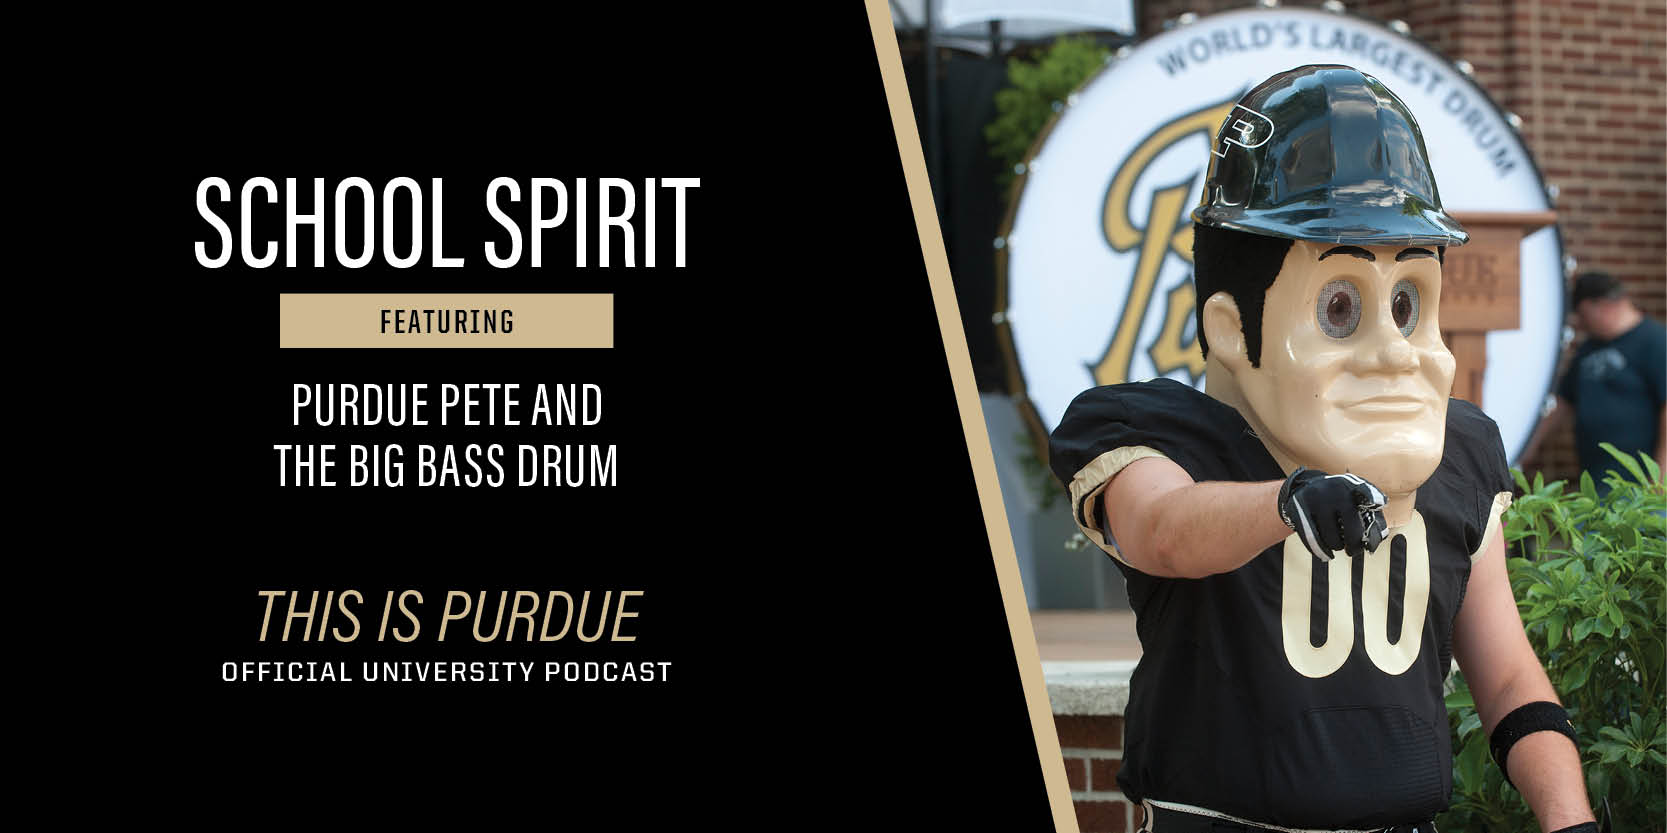 This is Purdue Podcast - School Spirit